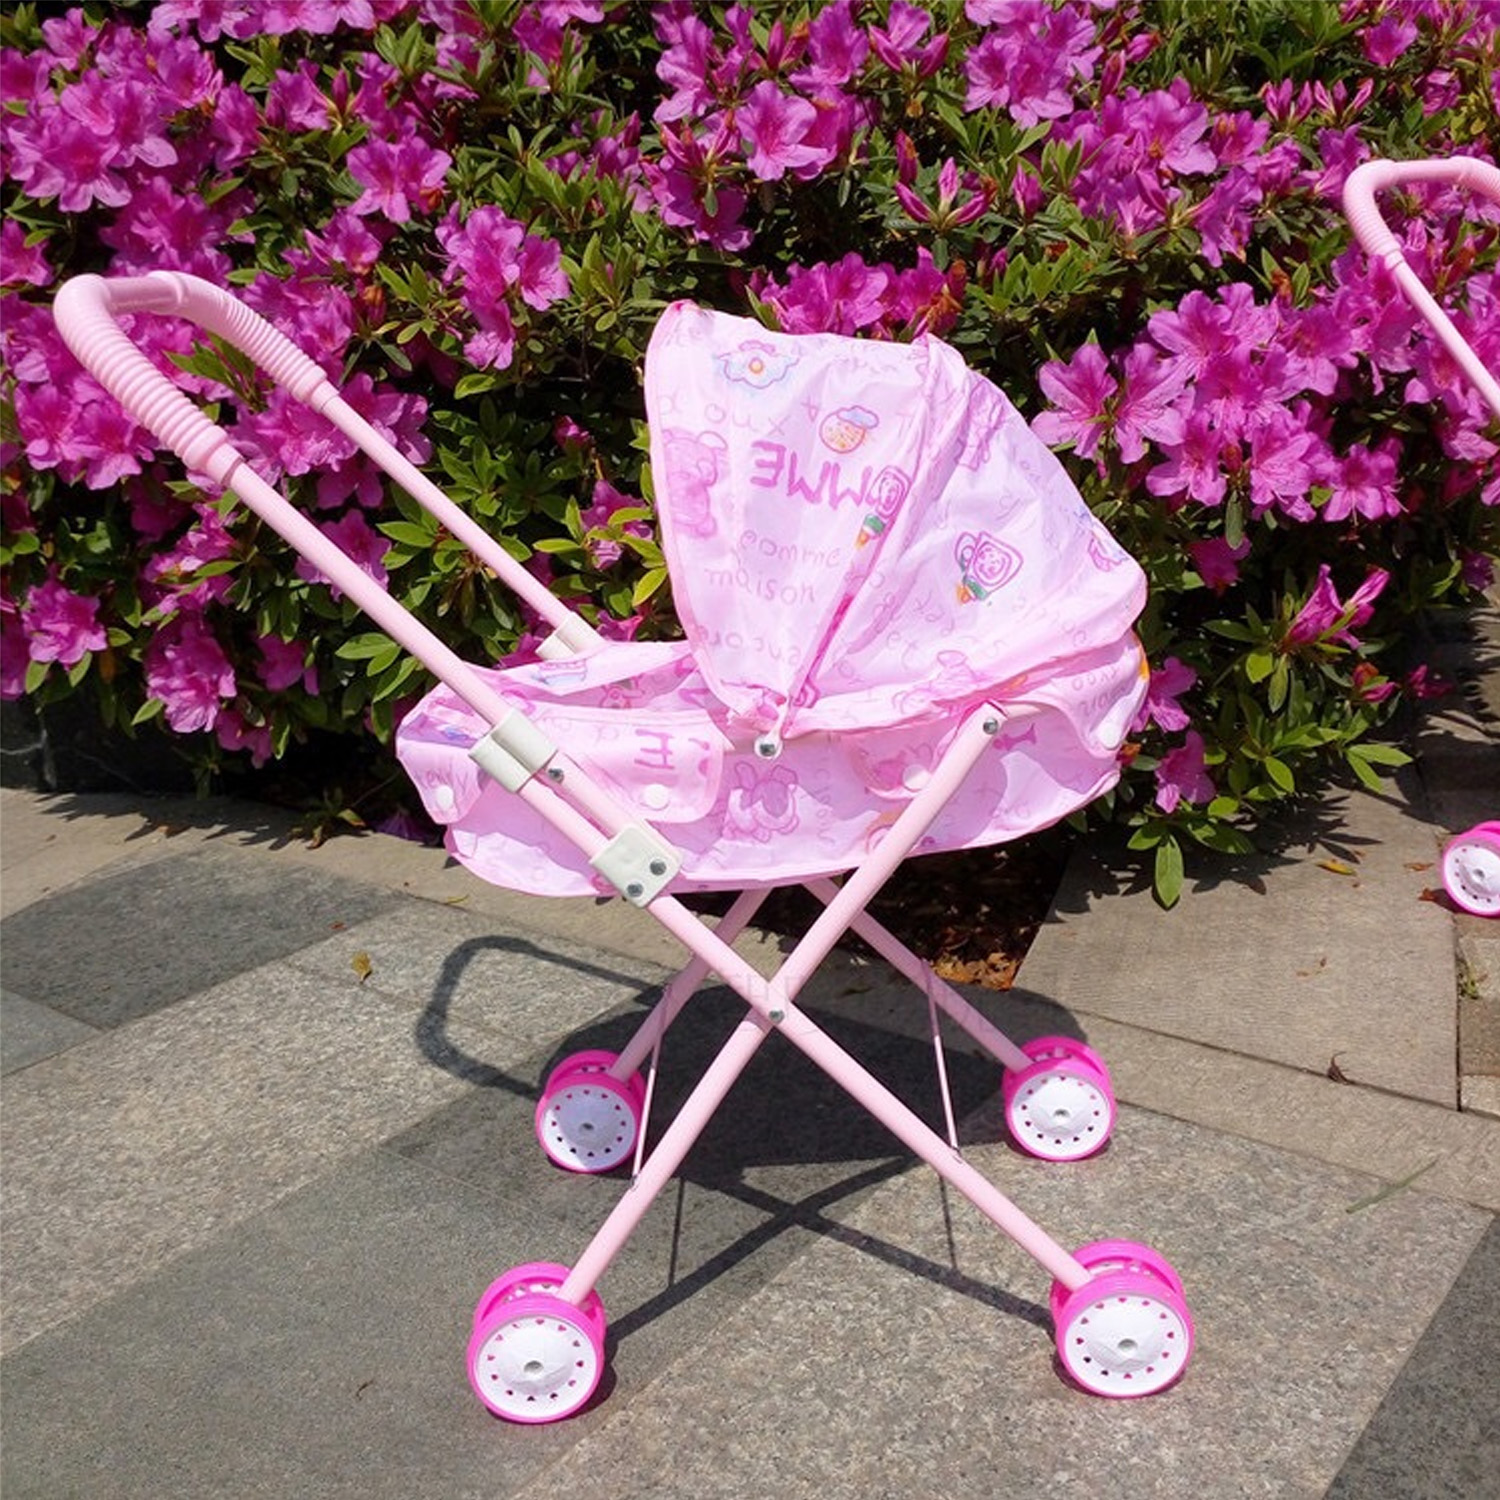 Besegad Cute Foldable Baby Doll Pram Pushchair Simulation Stroller Toy For Childrens Kids Girl Pretend Role Play Toy Accessories